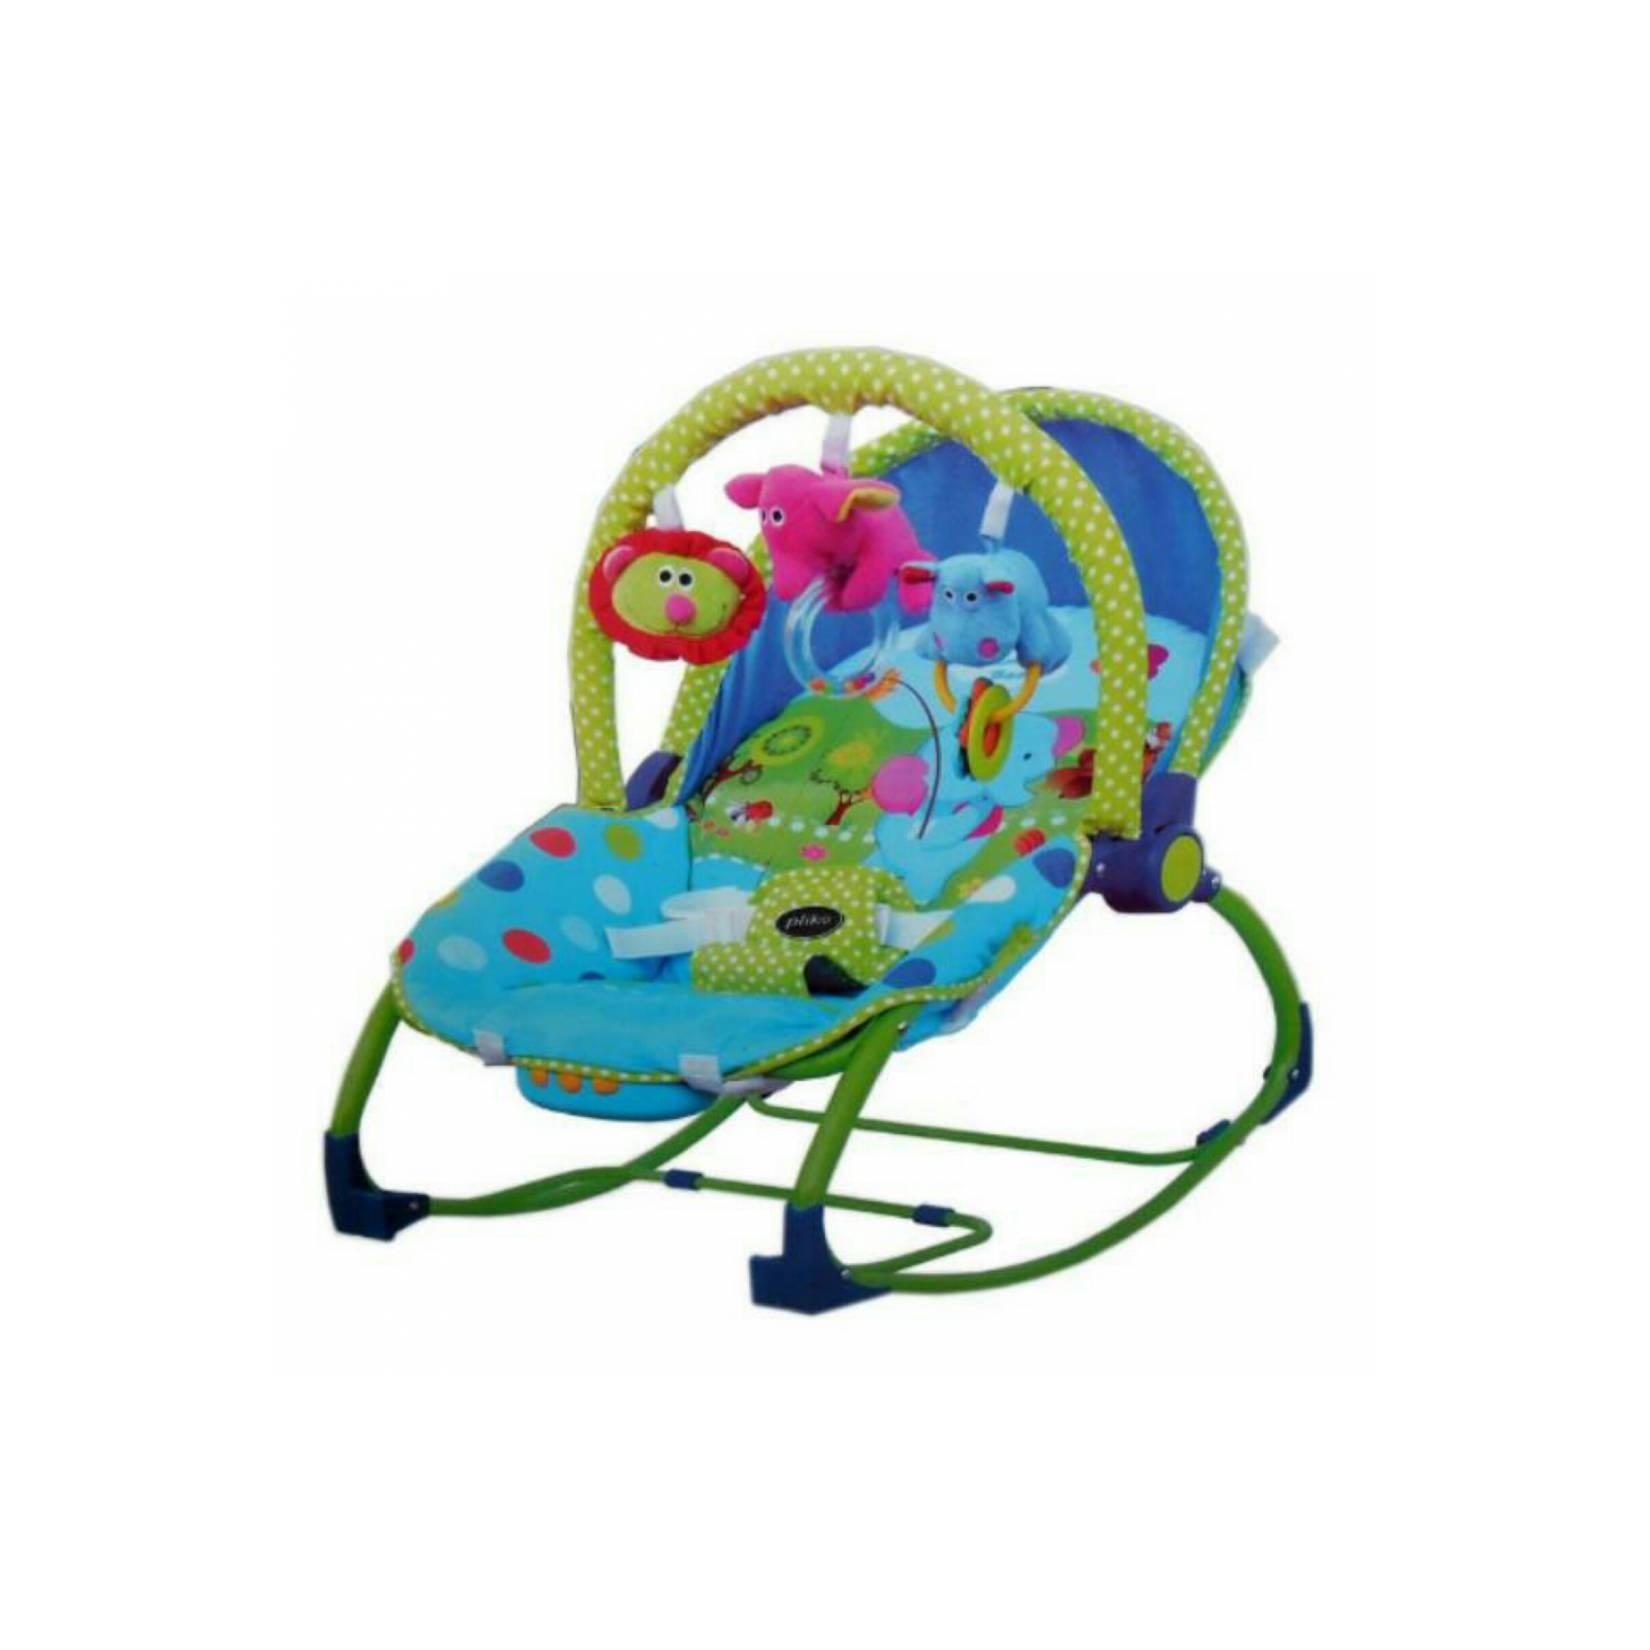 BOUNCER BABY ROCKING CHAIR PLIKO HAMMOCK 3 PHASE ELEPHANT